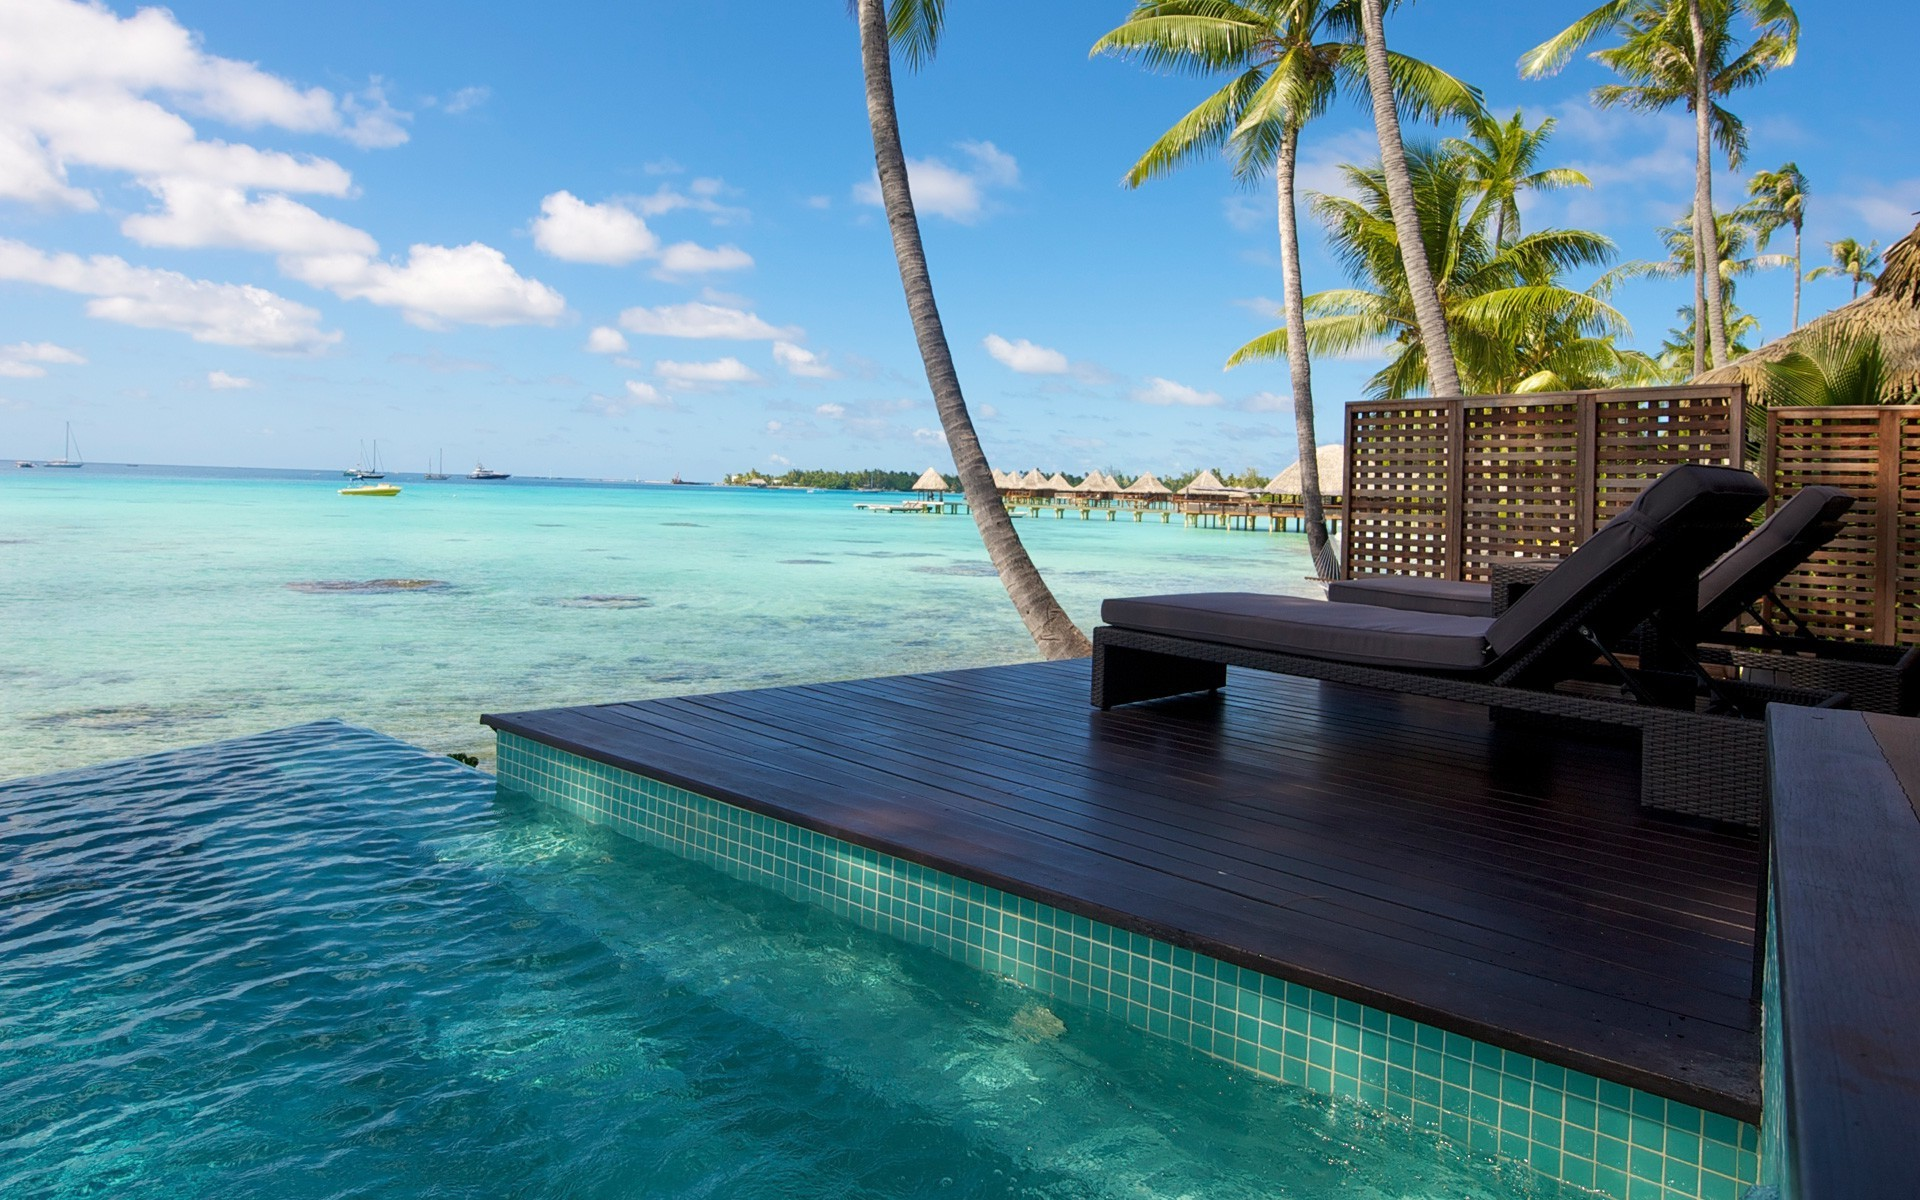 Res: 1920x1200, nature, Landscape, Resort, Beach, Atolls, Palm Trees, Sea, Swimming Pool,  Tropical, Bungalow, Water, Summer Wallpapers HD / Desktop and Mobile  Backgrounds